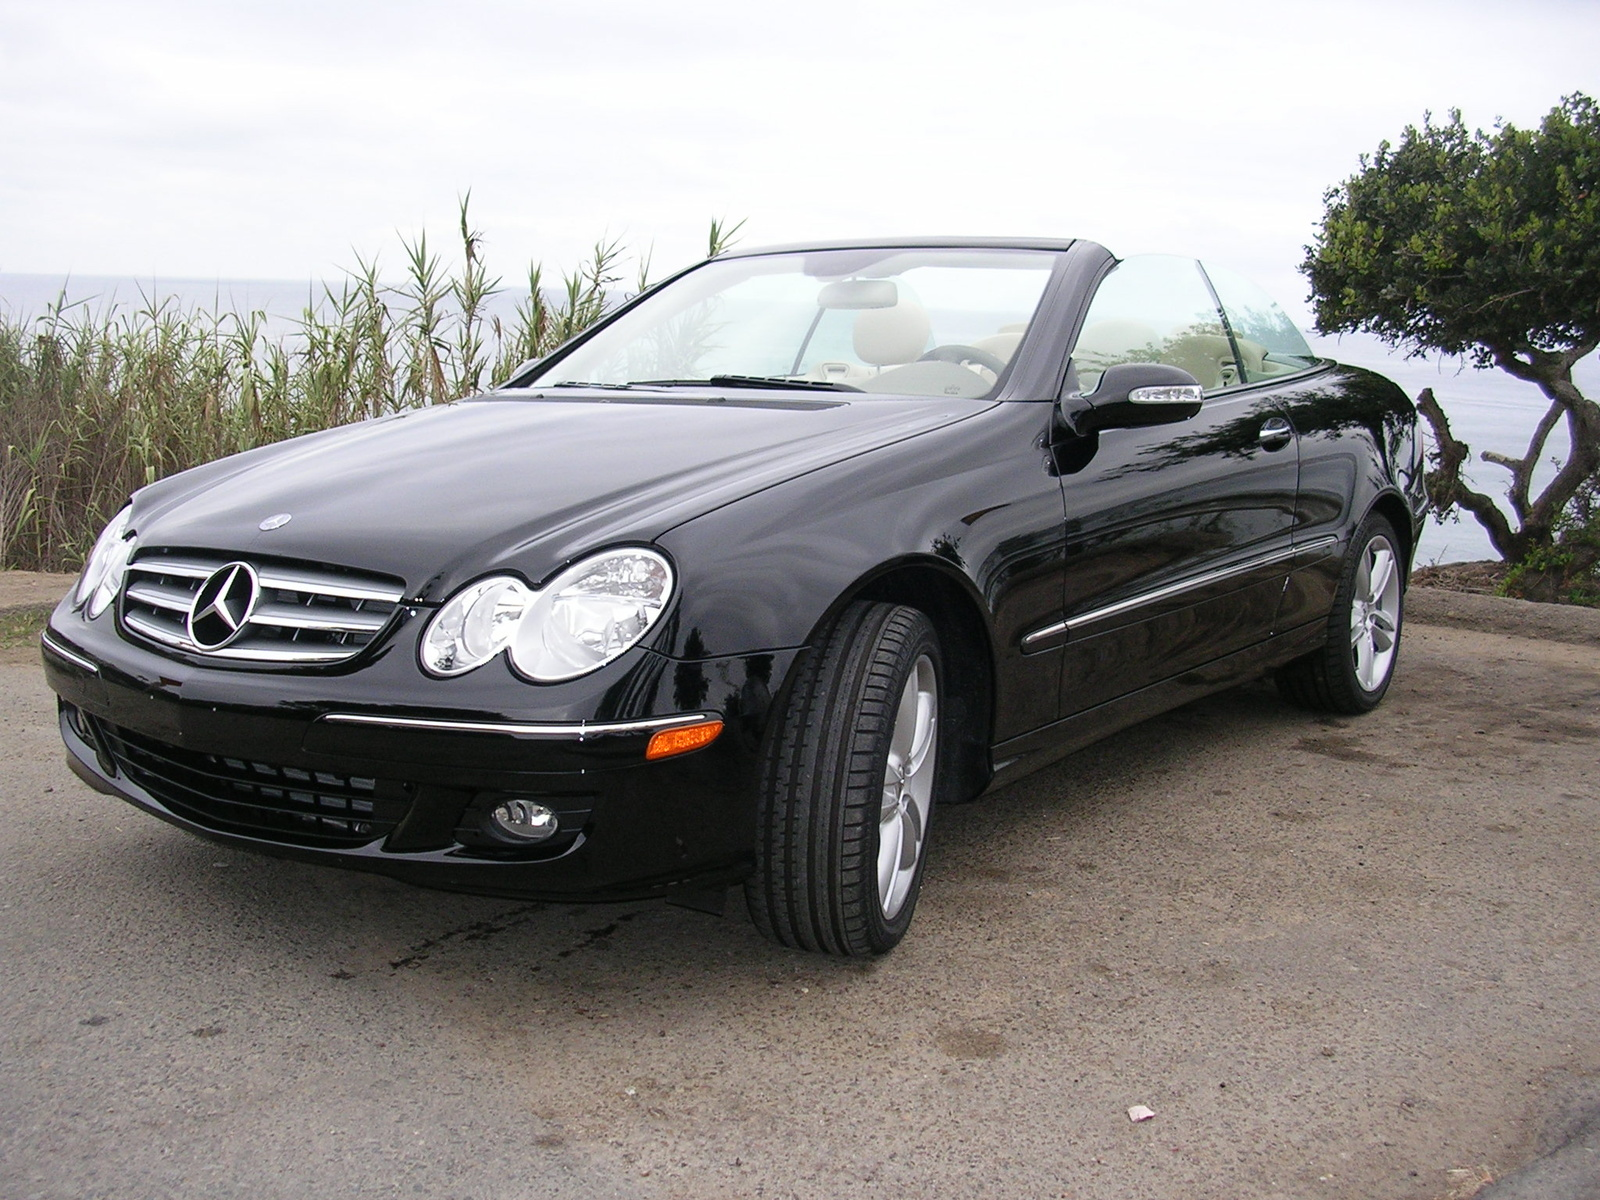 2006 mercedes benz clk class pictures cargurus for Mercedes benz clk350 convertible